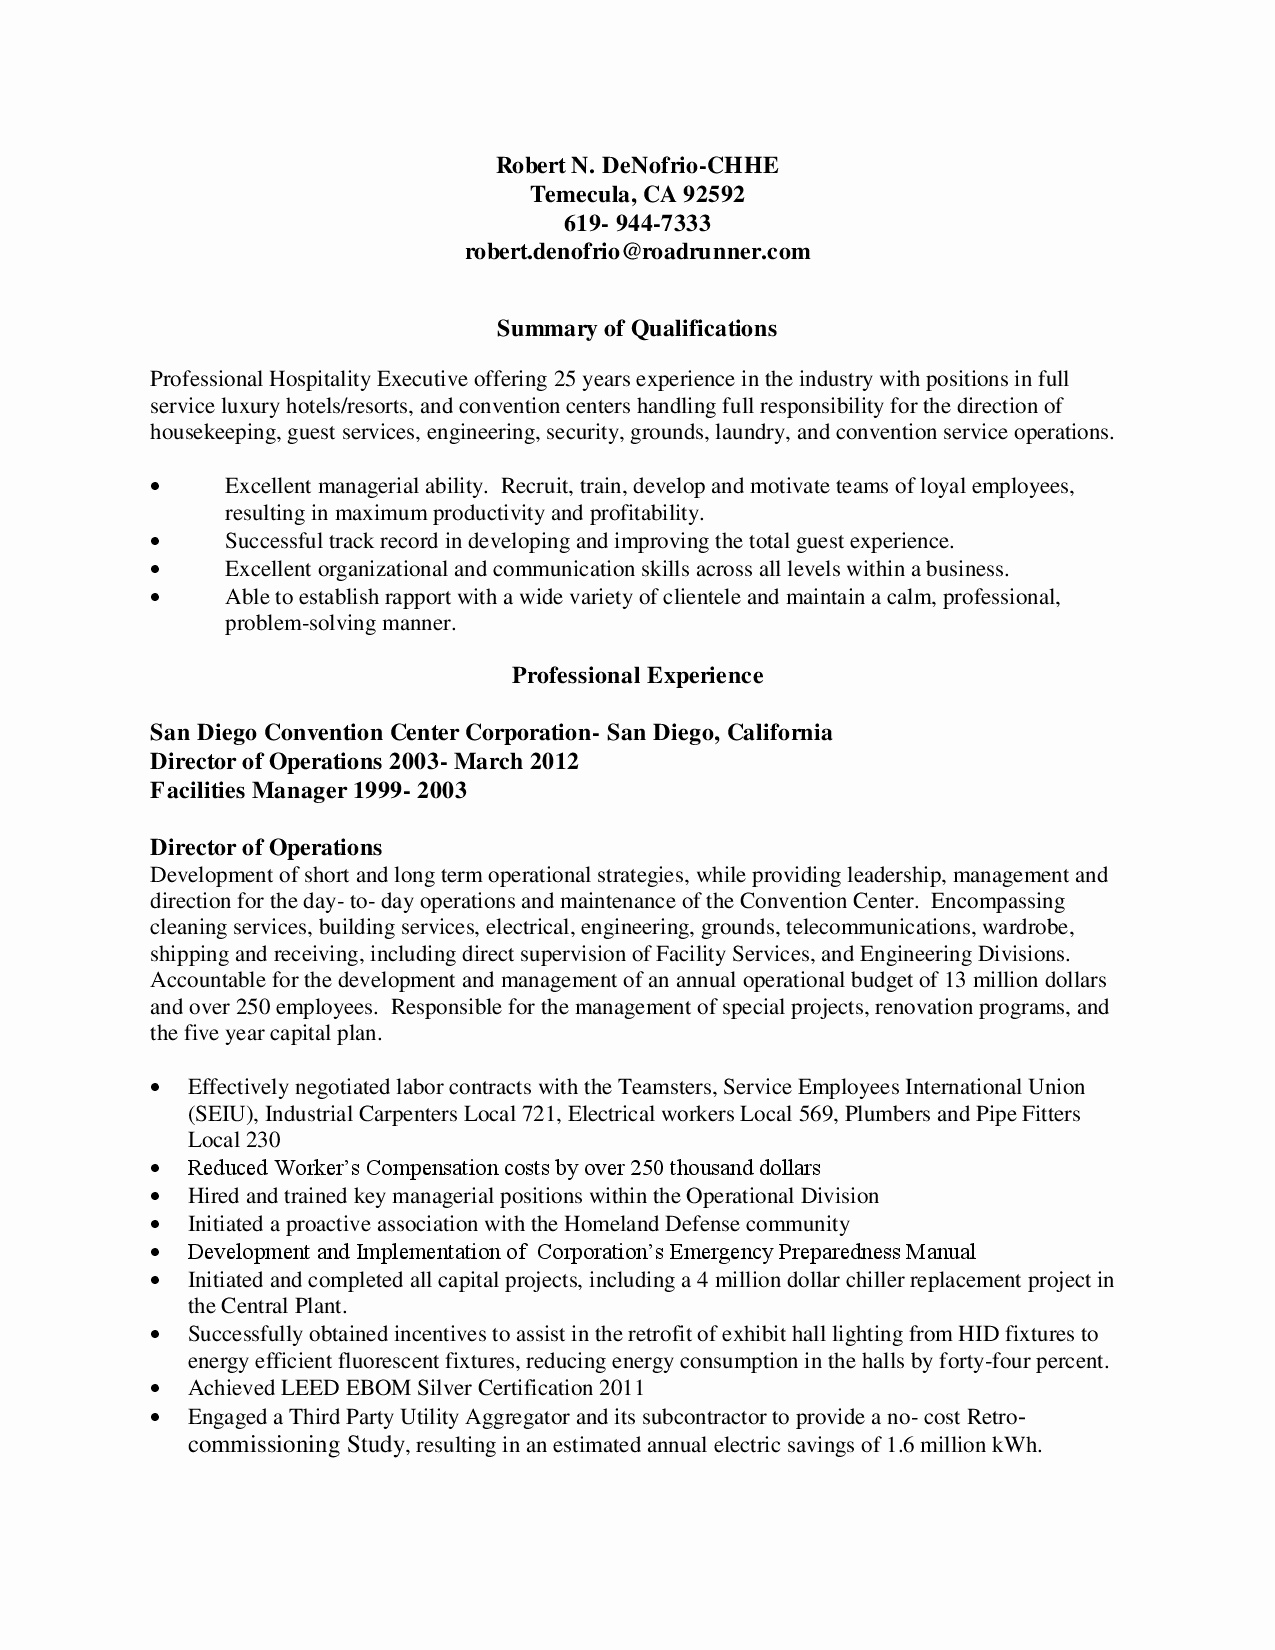 Houskeeping Resume Resume Ideas